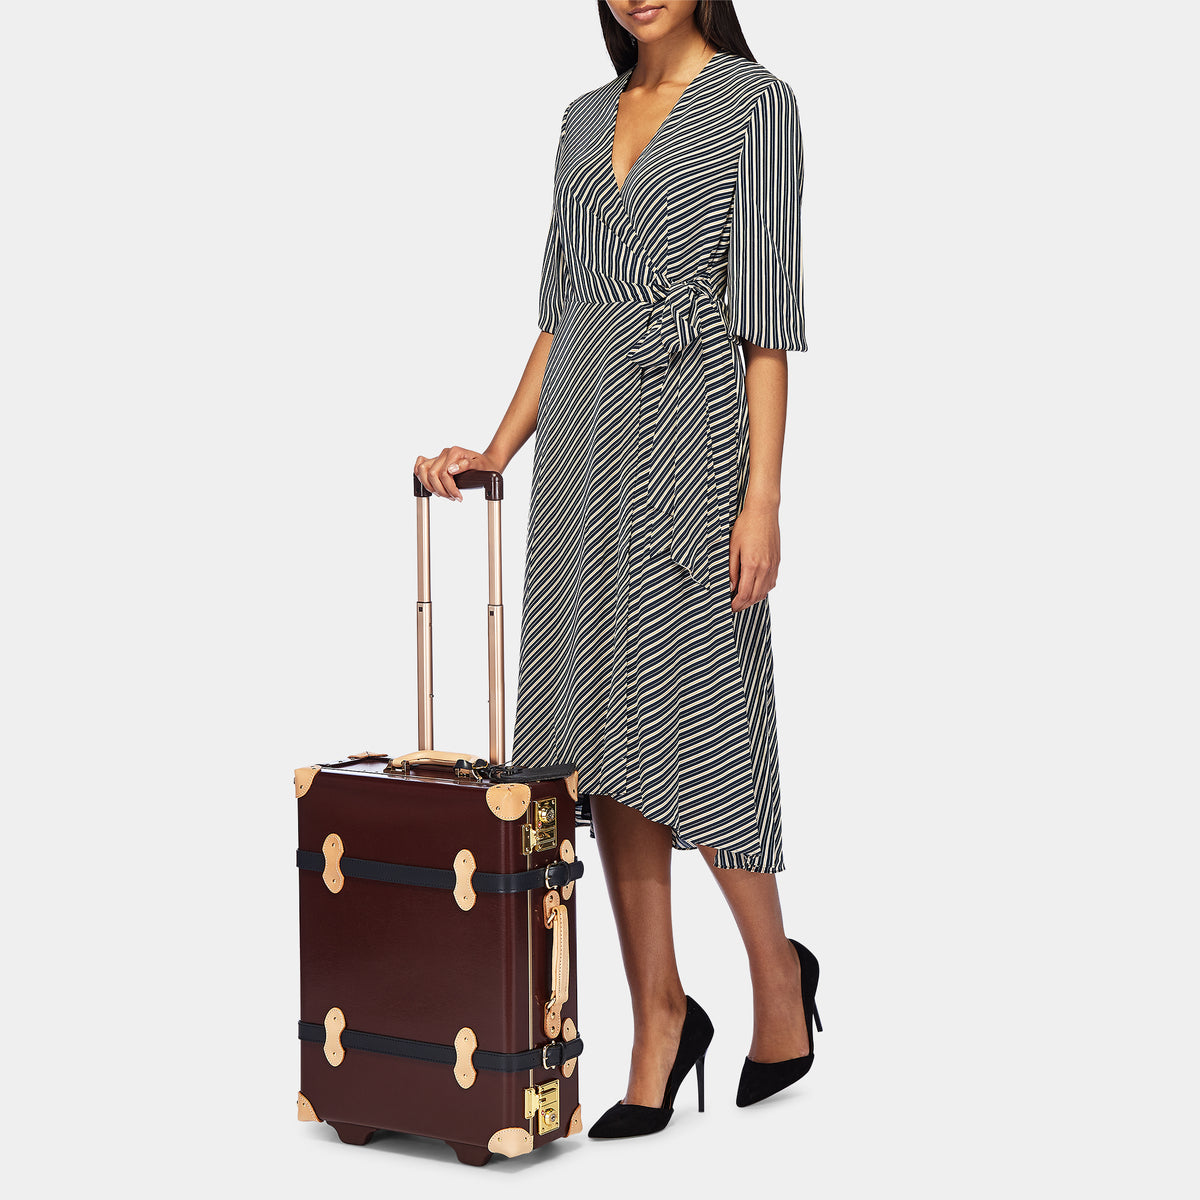 The Architect Carryon in Burgundy - Vintage Style Leather Case - Exterior Front with Model